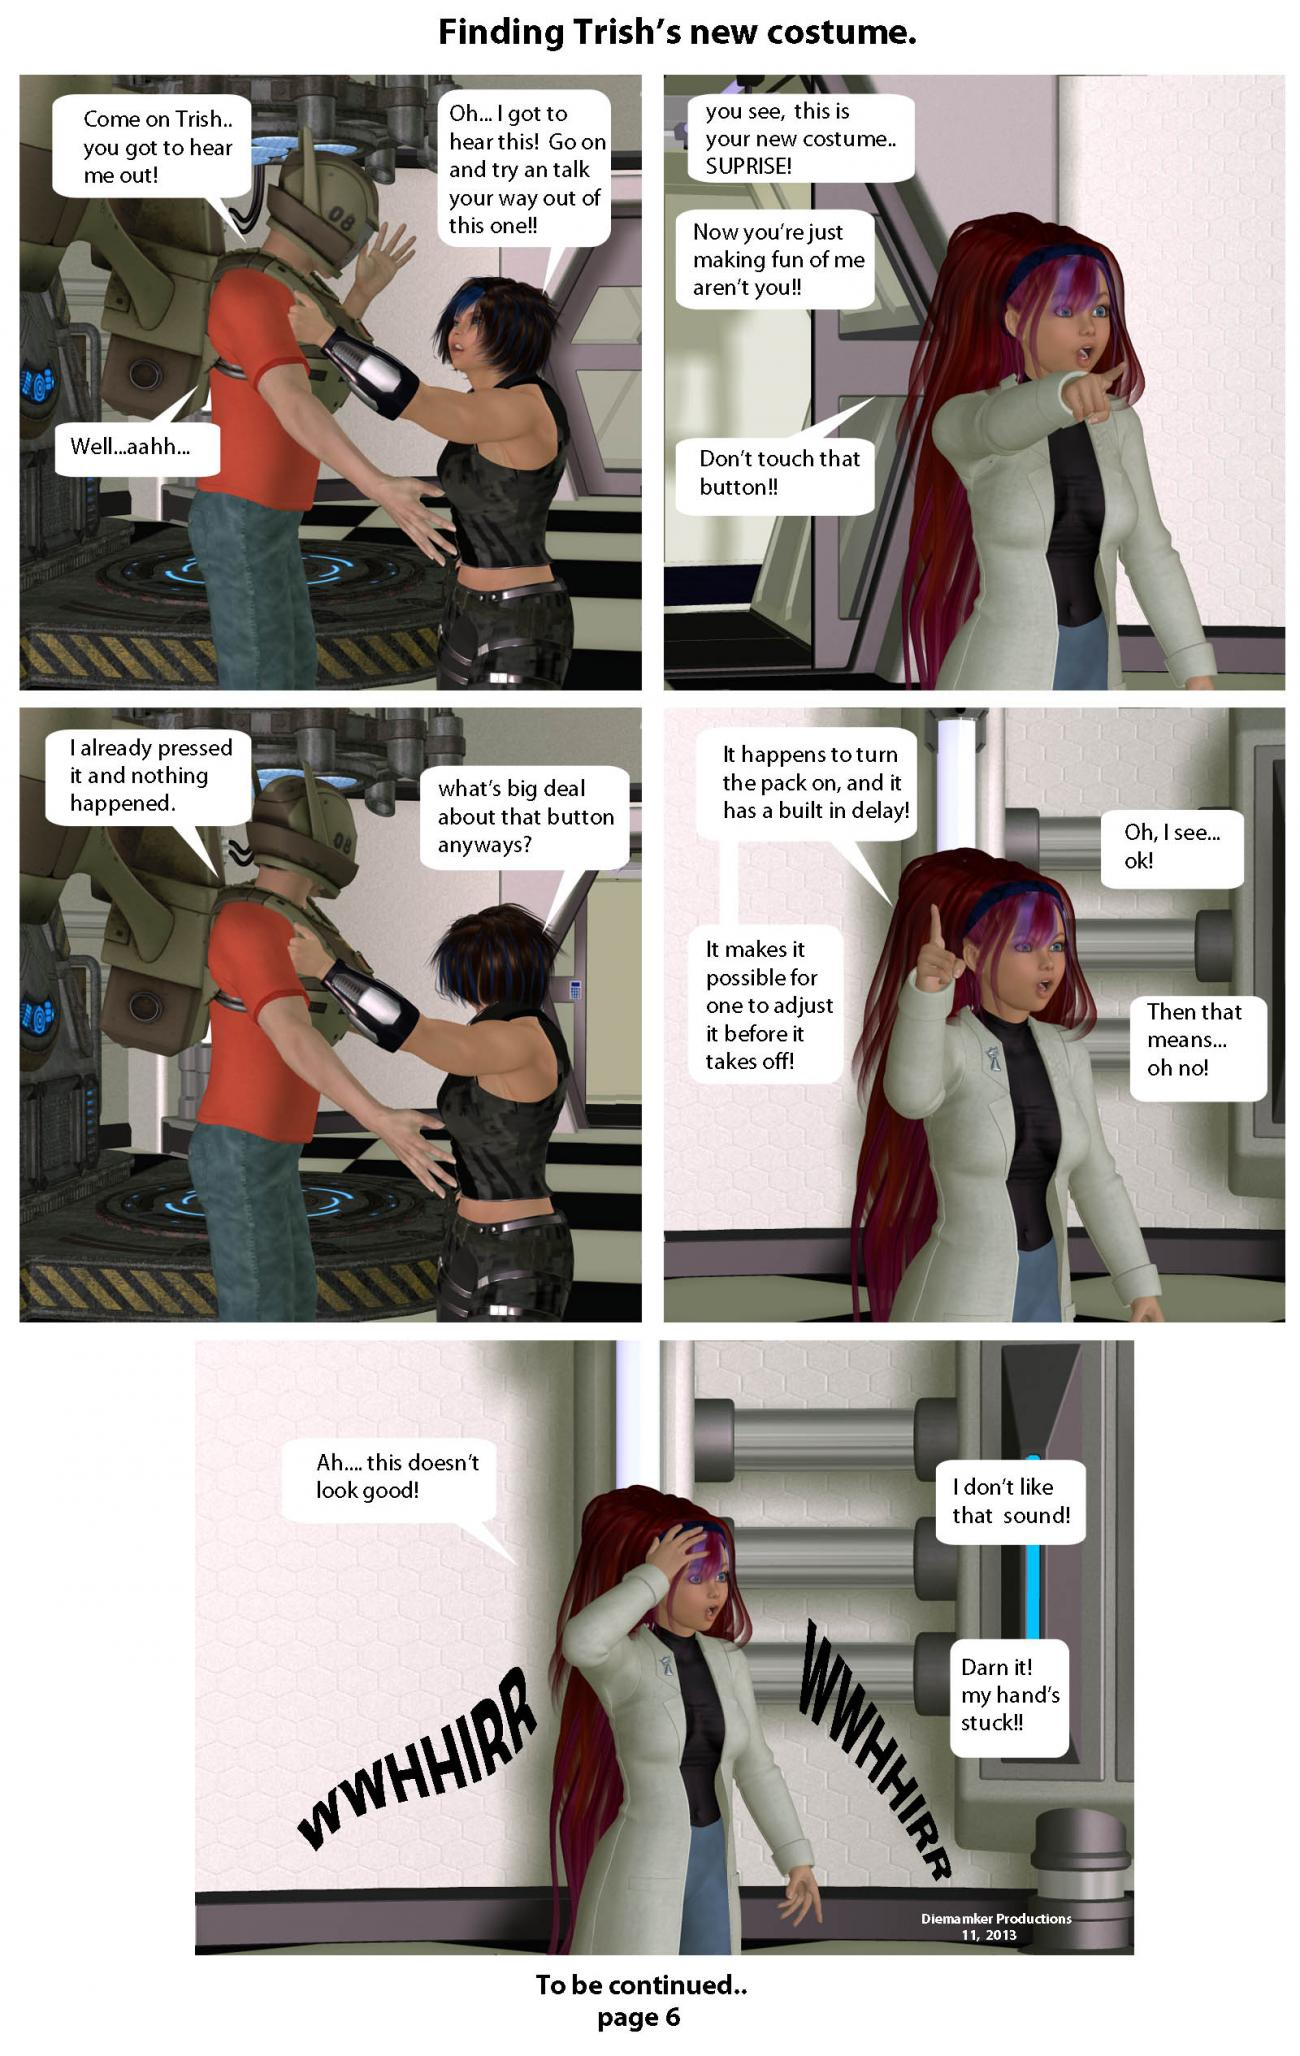 Finding Trish's new costume  page 6